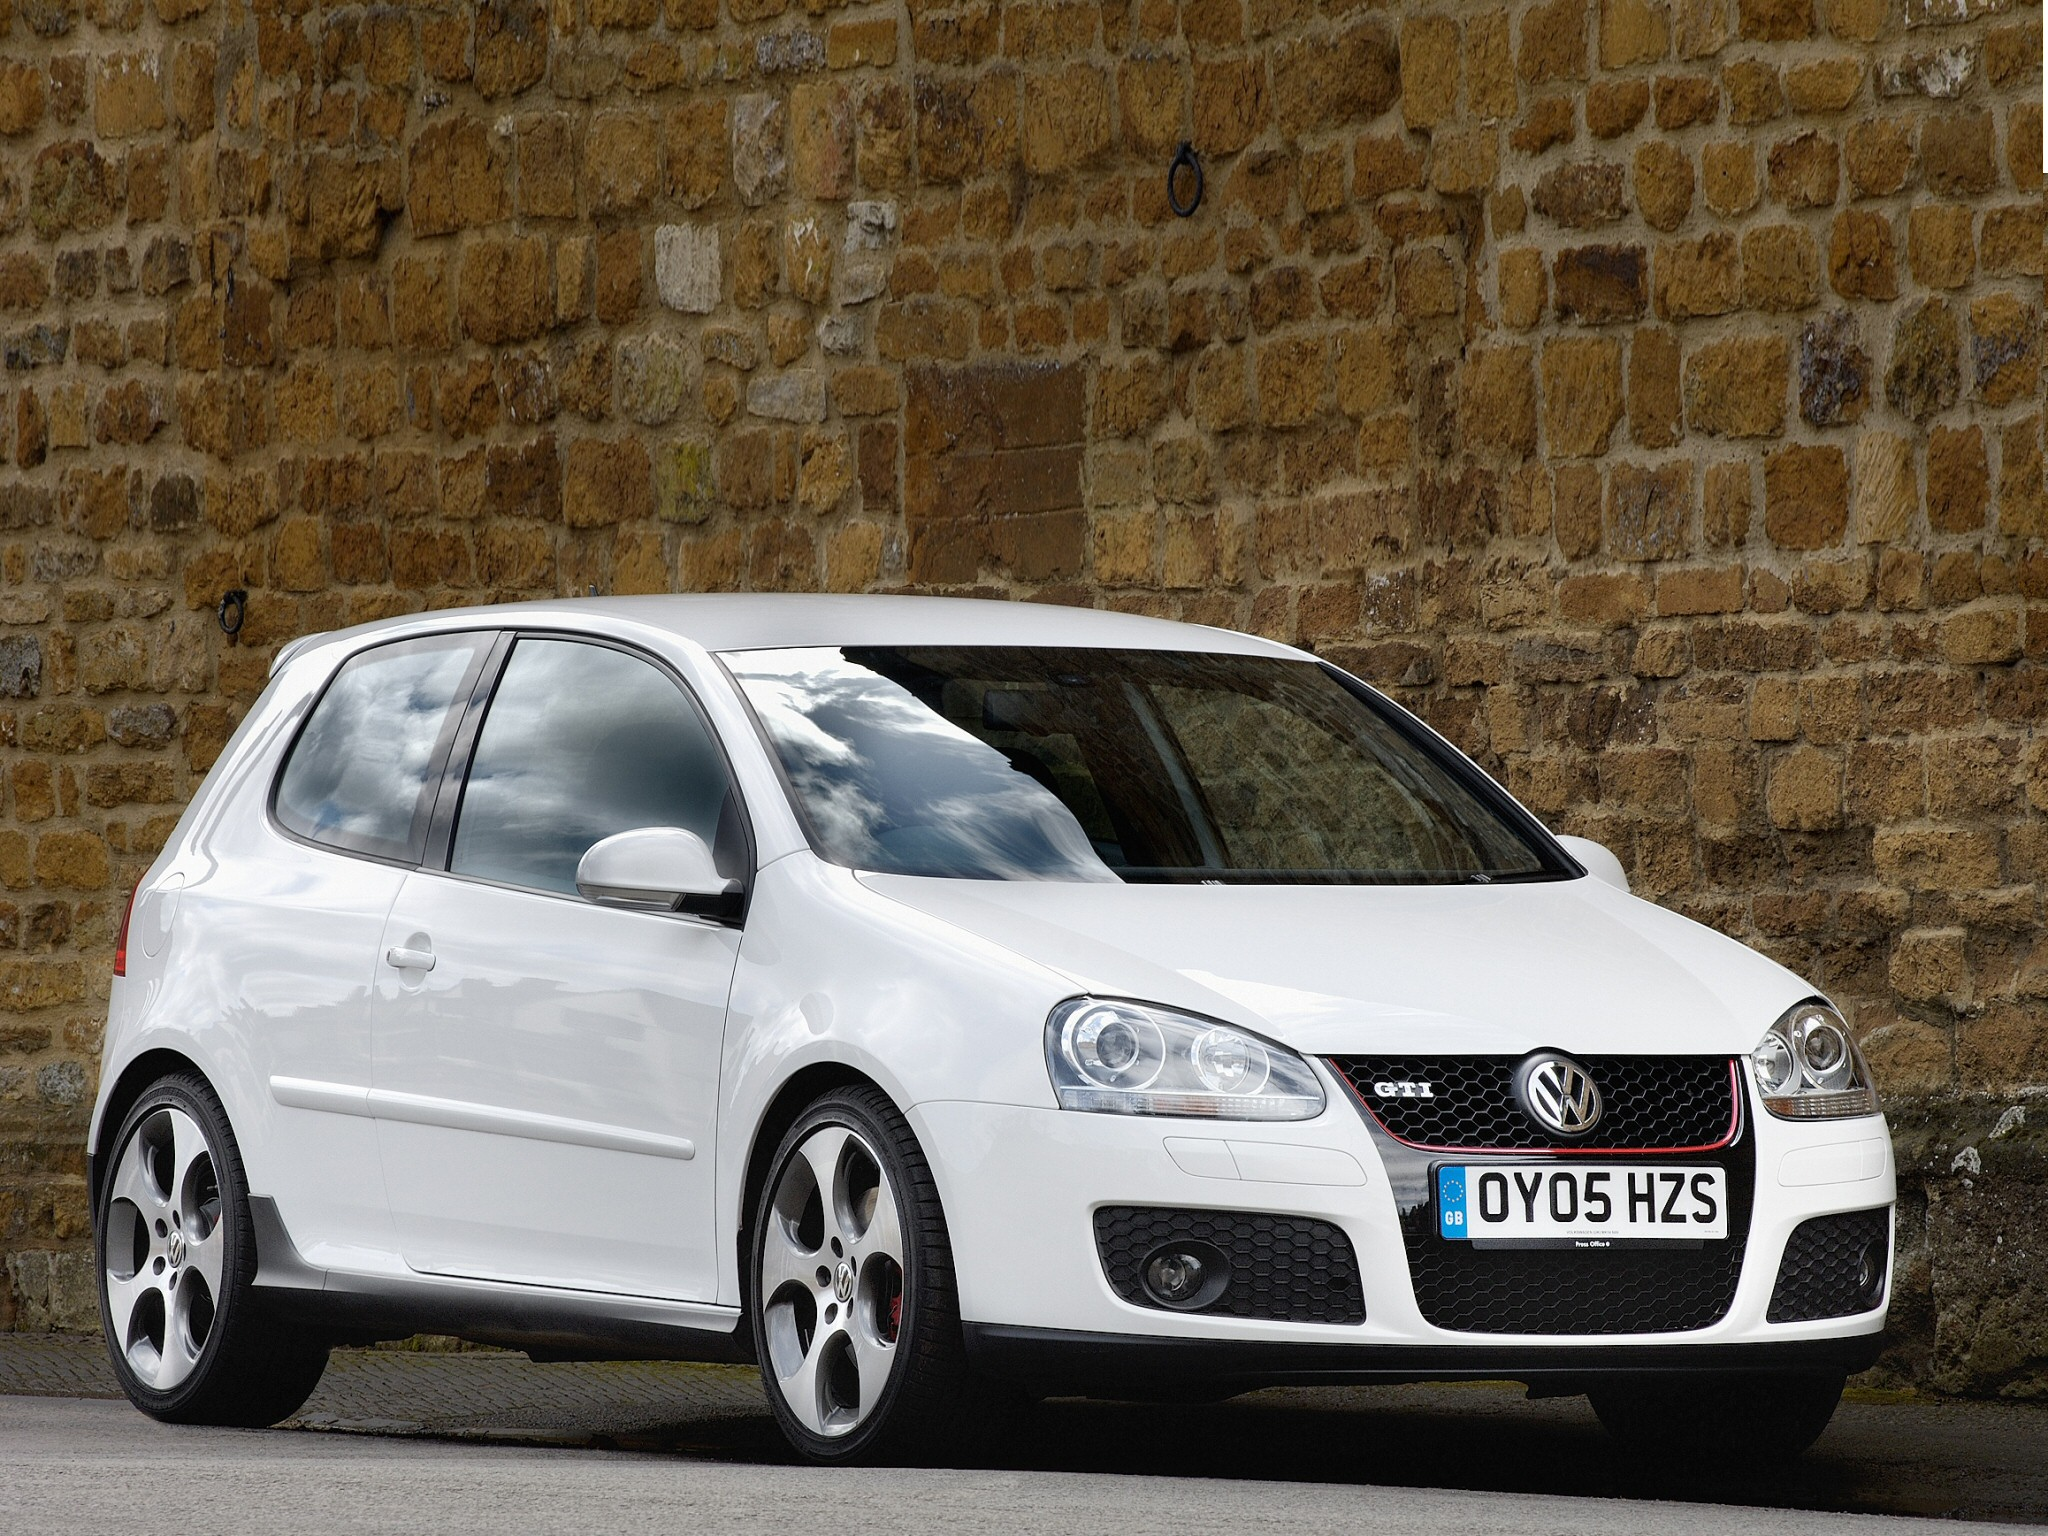 2003 Volkswagen Golf Hatchback 3-door